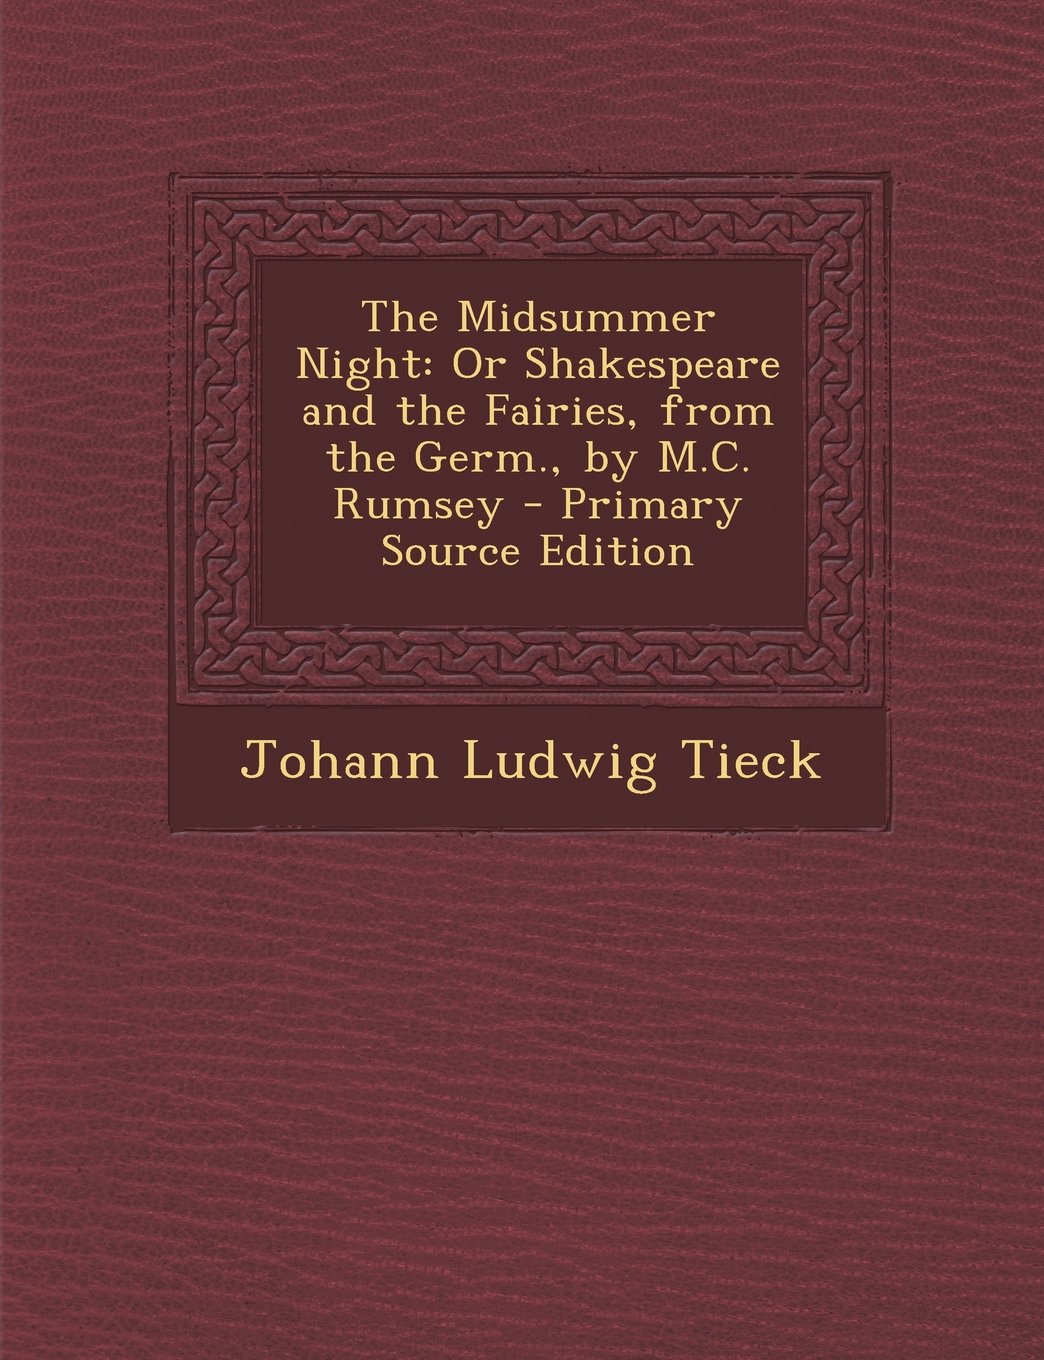 Download Midsummer Night: Or Shakespeare and the Fairies, from the Germ., by M.C. Rumsey PDF